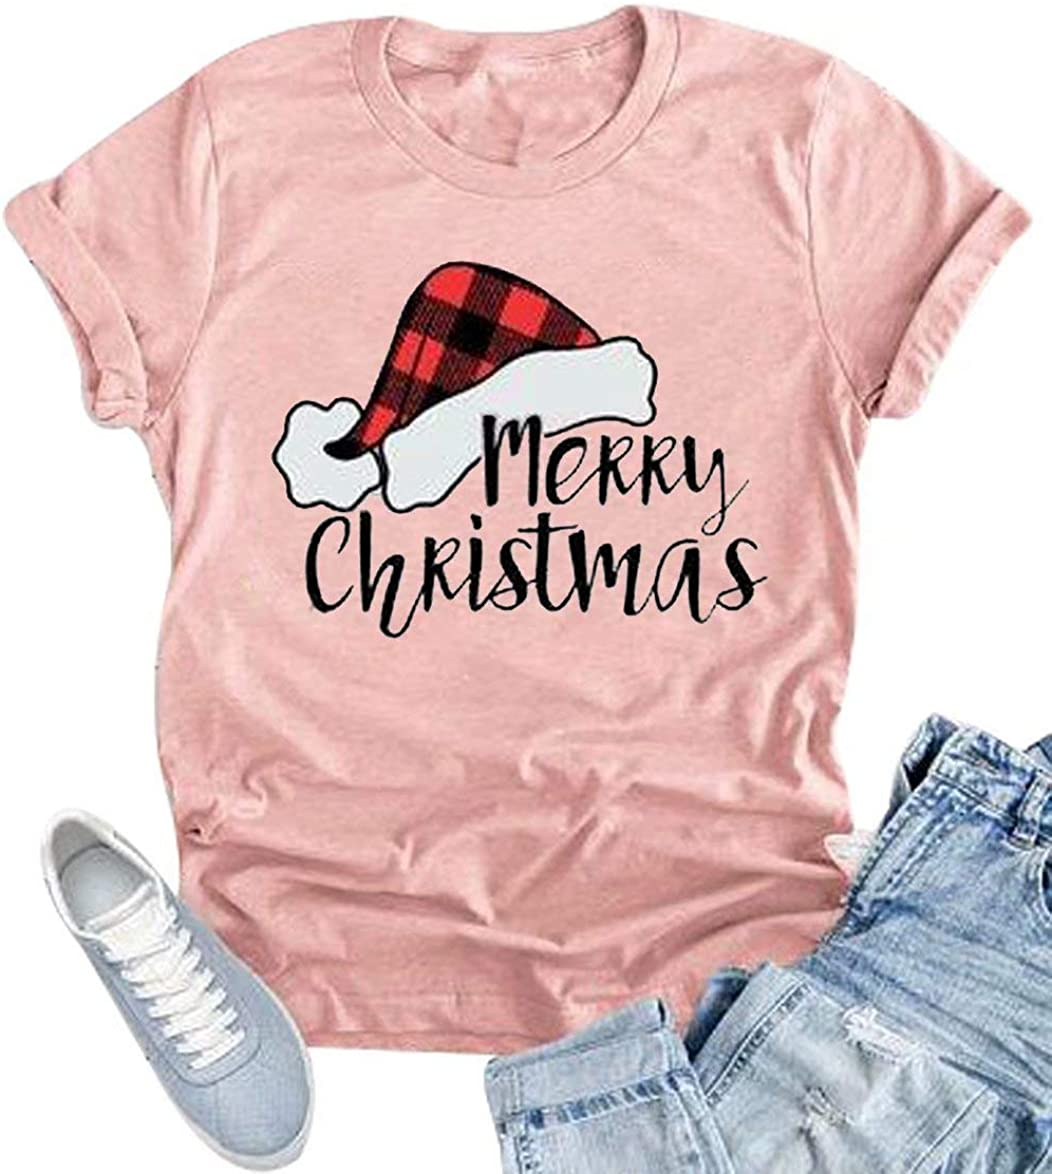 KIDDAD Merry Christmas T-Shirt for Women Plaid Santa Santa Claus Hat Graphic Short Sleeve Tee Tops